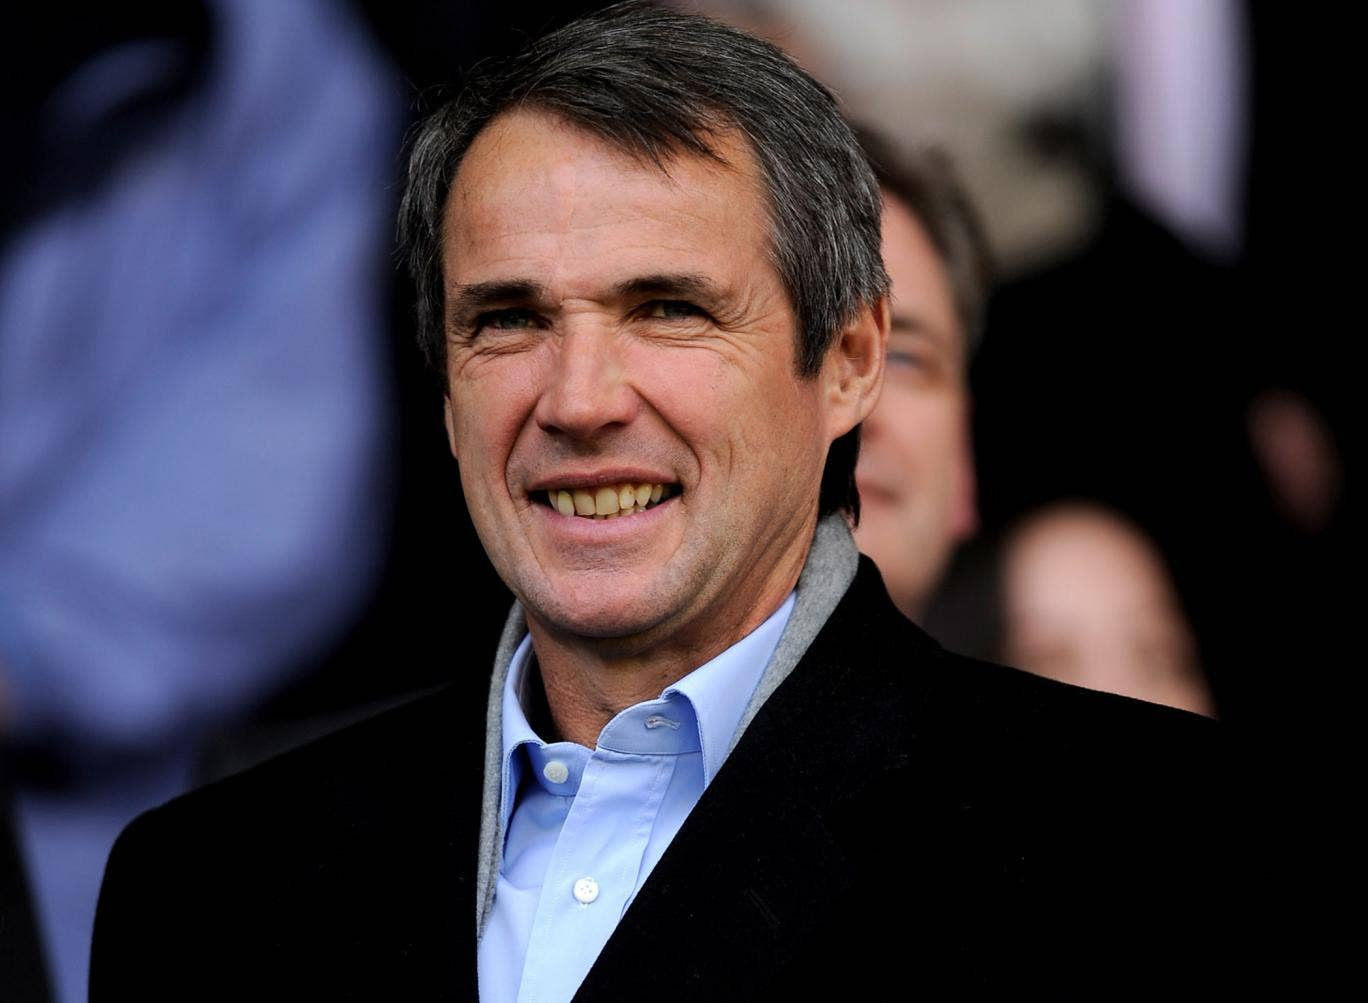 The fact that there was not a single goalless draw in any of the English or Scottish Leagues last weekend would seem to give credence to rants by Alan Hansen, pictured, about bad defending